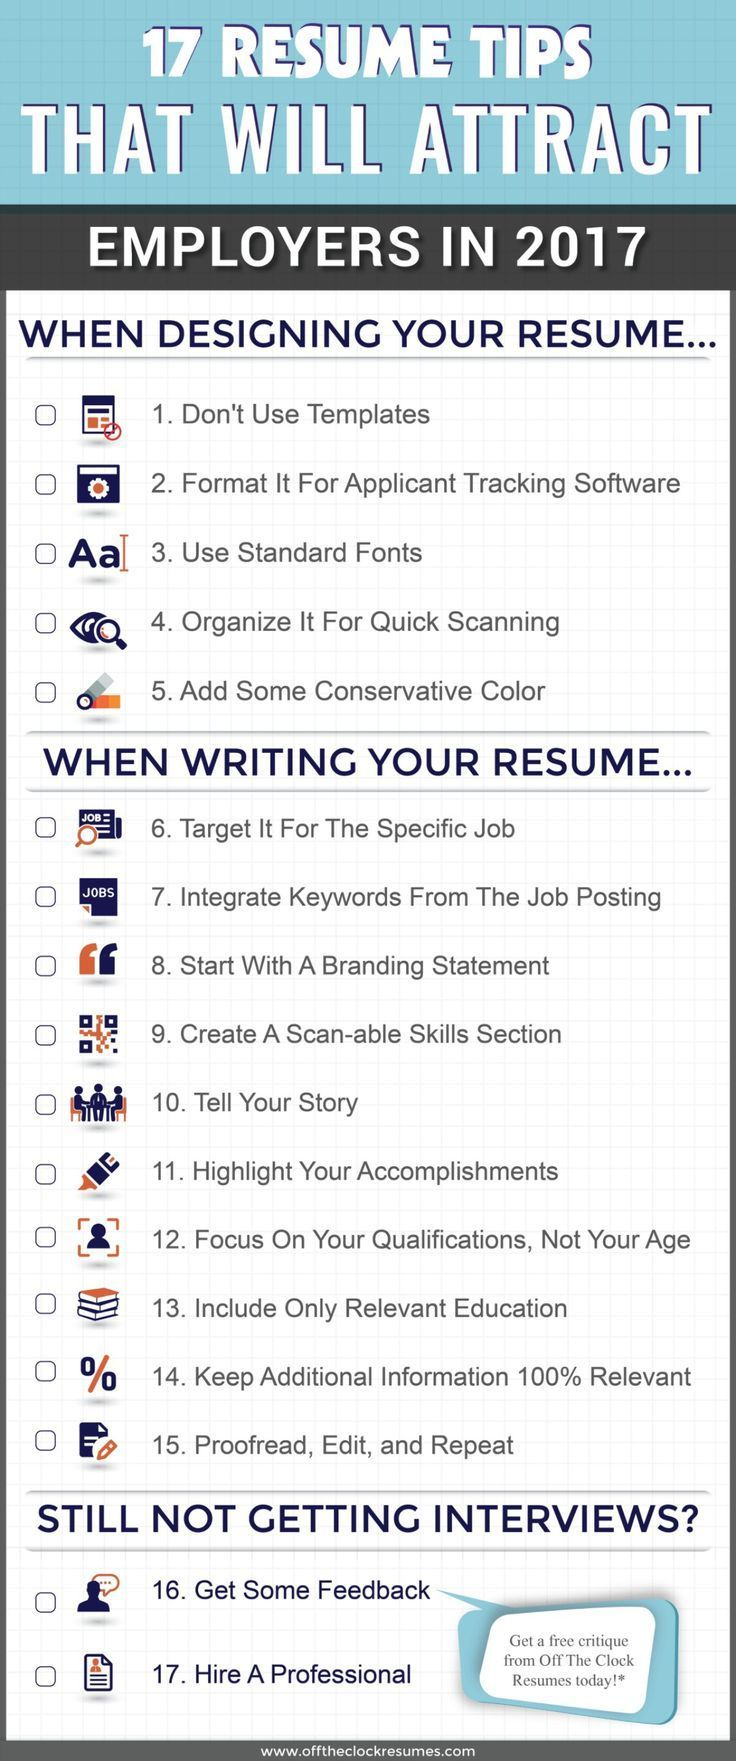 17 Resume Tips That Will Attract Employers In 2017 Infographic